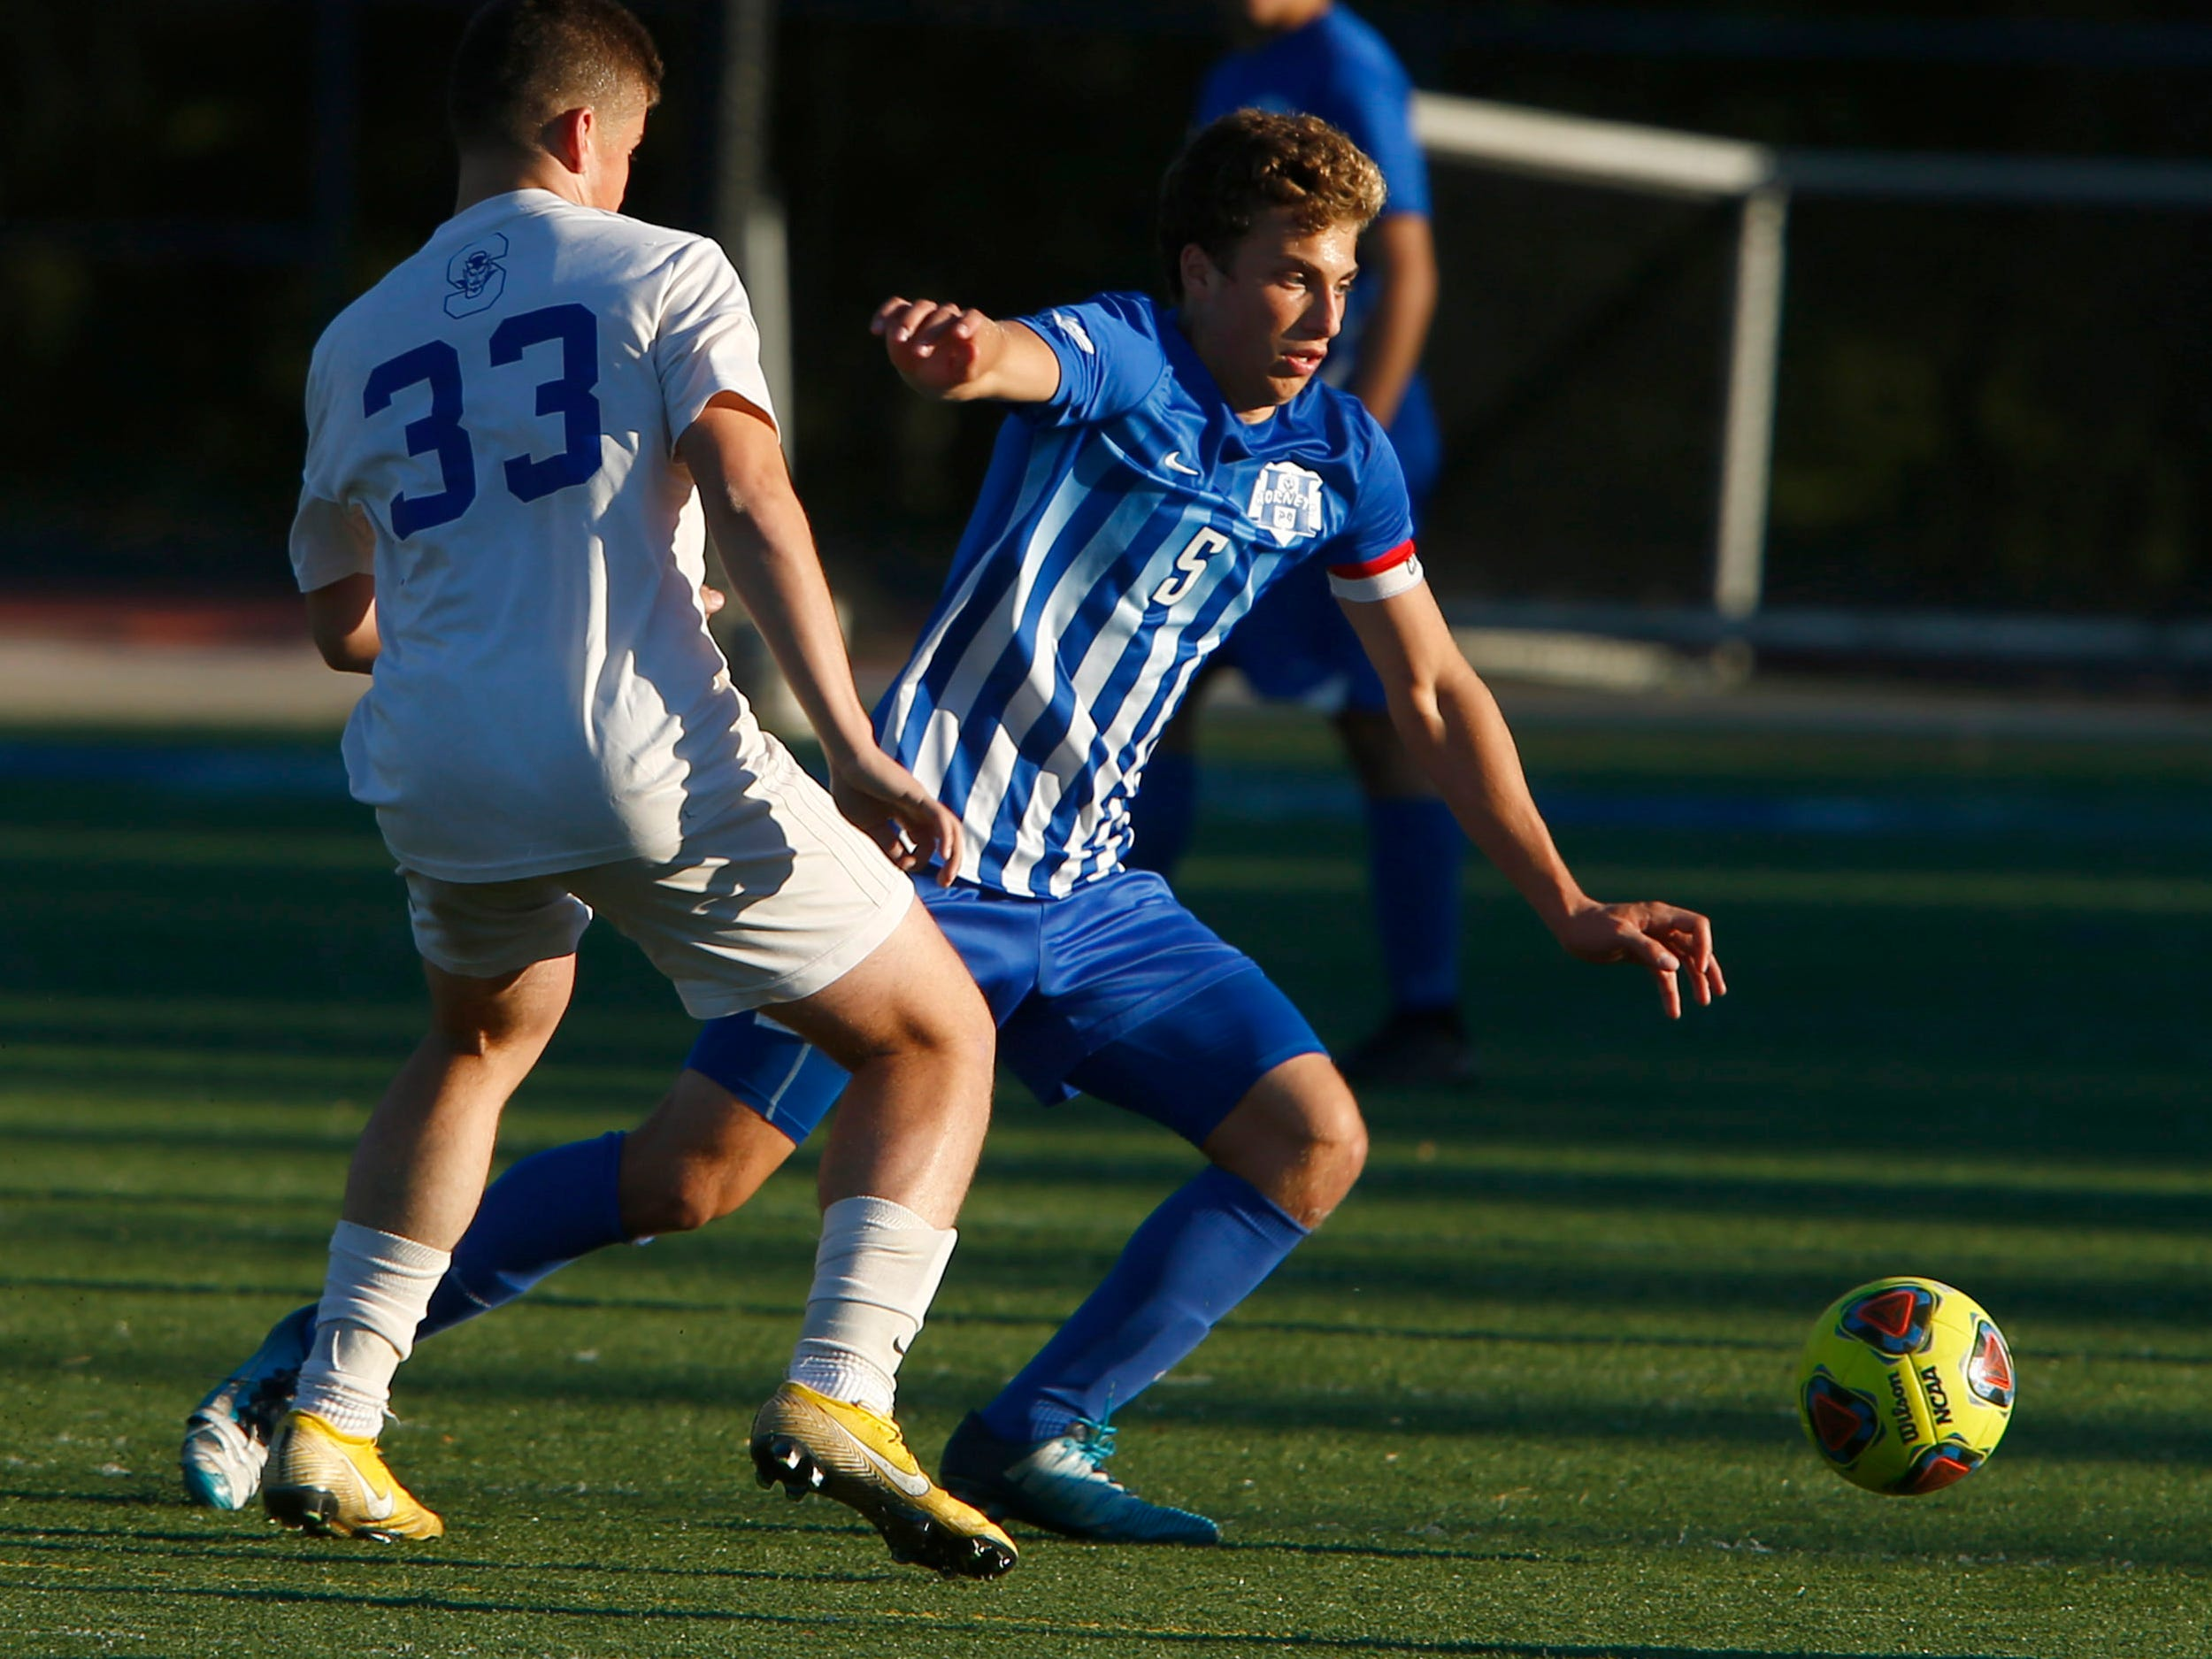 Holmdel's Joe Arena (#5) chases down the ball in front of Shore Regional's Brandon DeNovaes during their Central Group II boys soccer final game played in Holmdel Thursday, November 8, 2018.